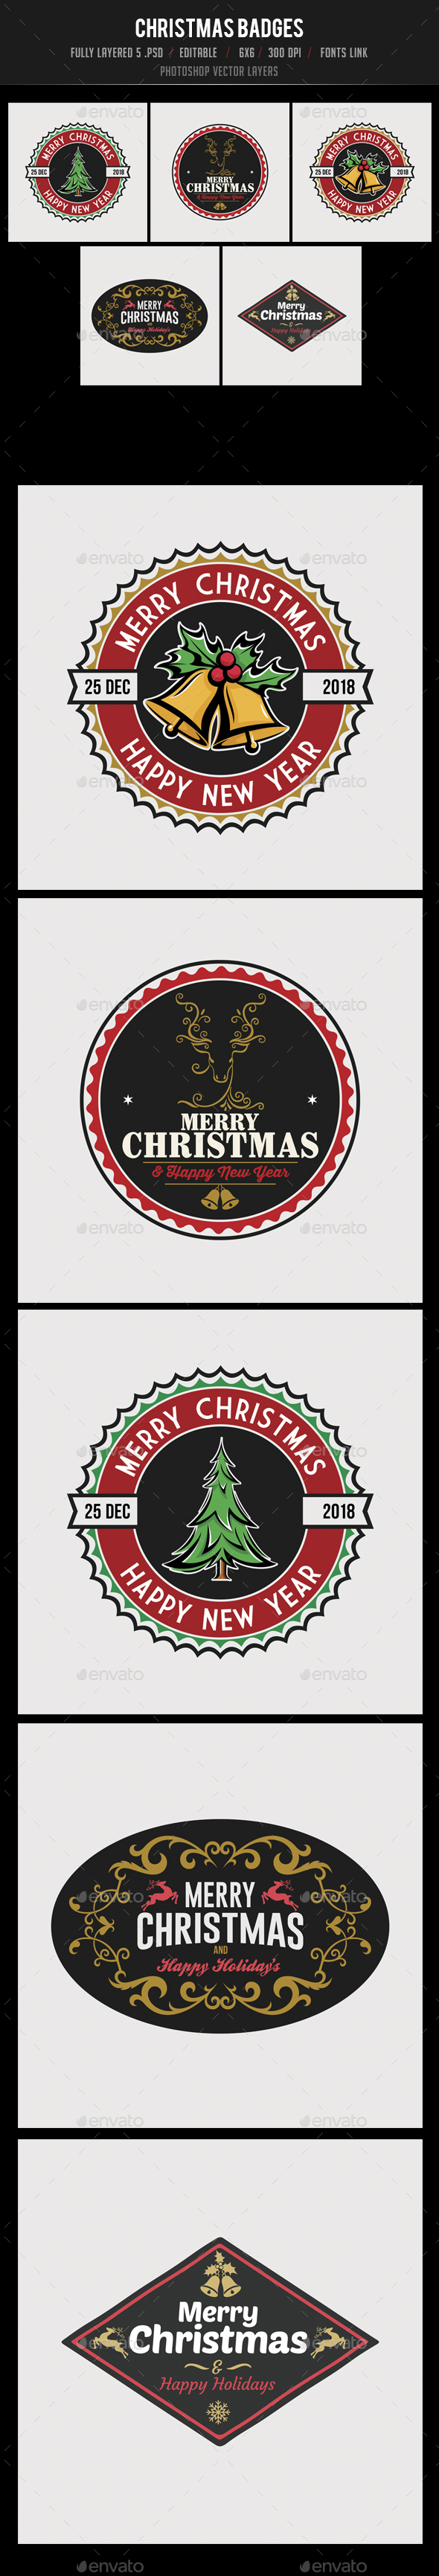 5 Christmas Badges - Badges & Stickers Web Elements